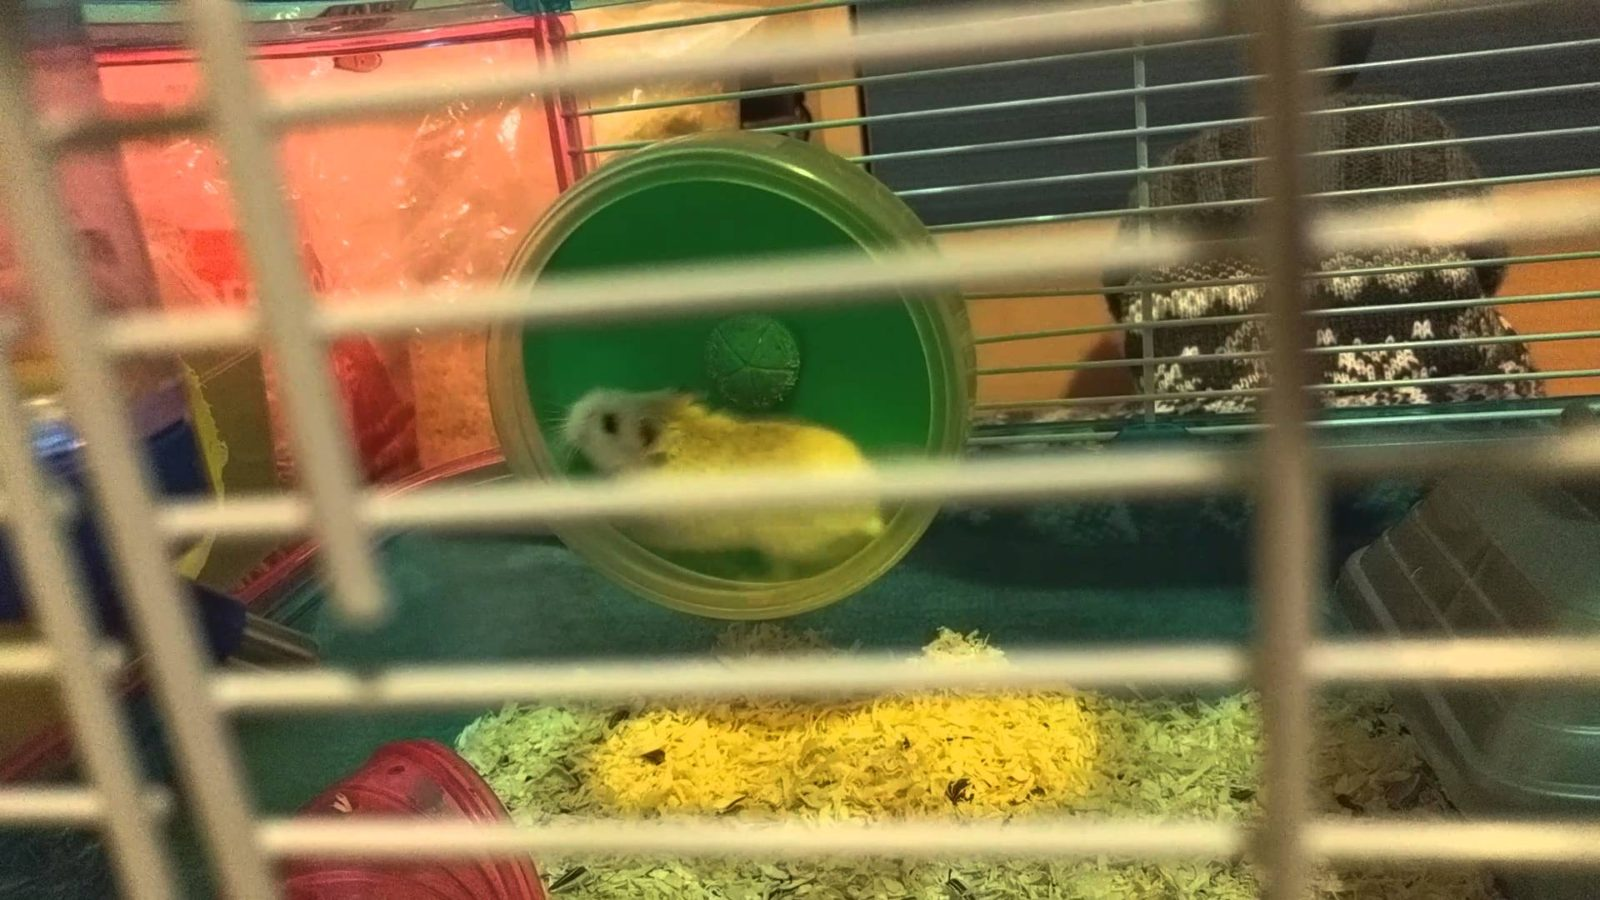 Daredevil Stunt Hamster Does Loop-The-Loop!